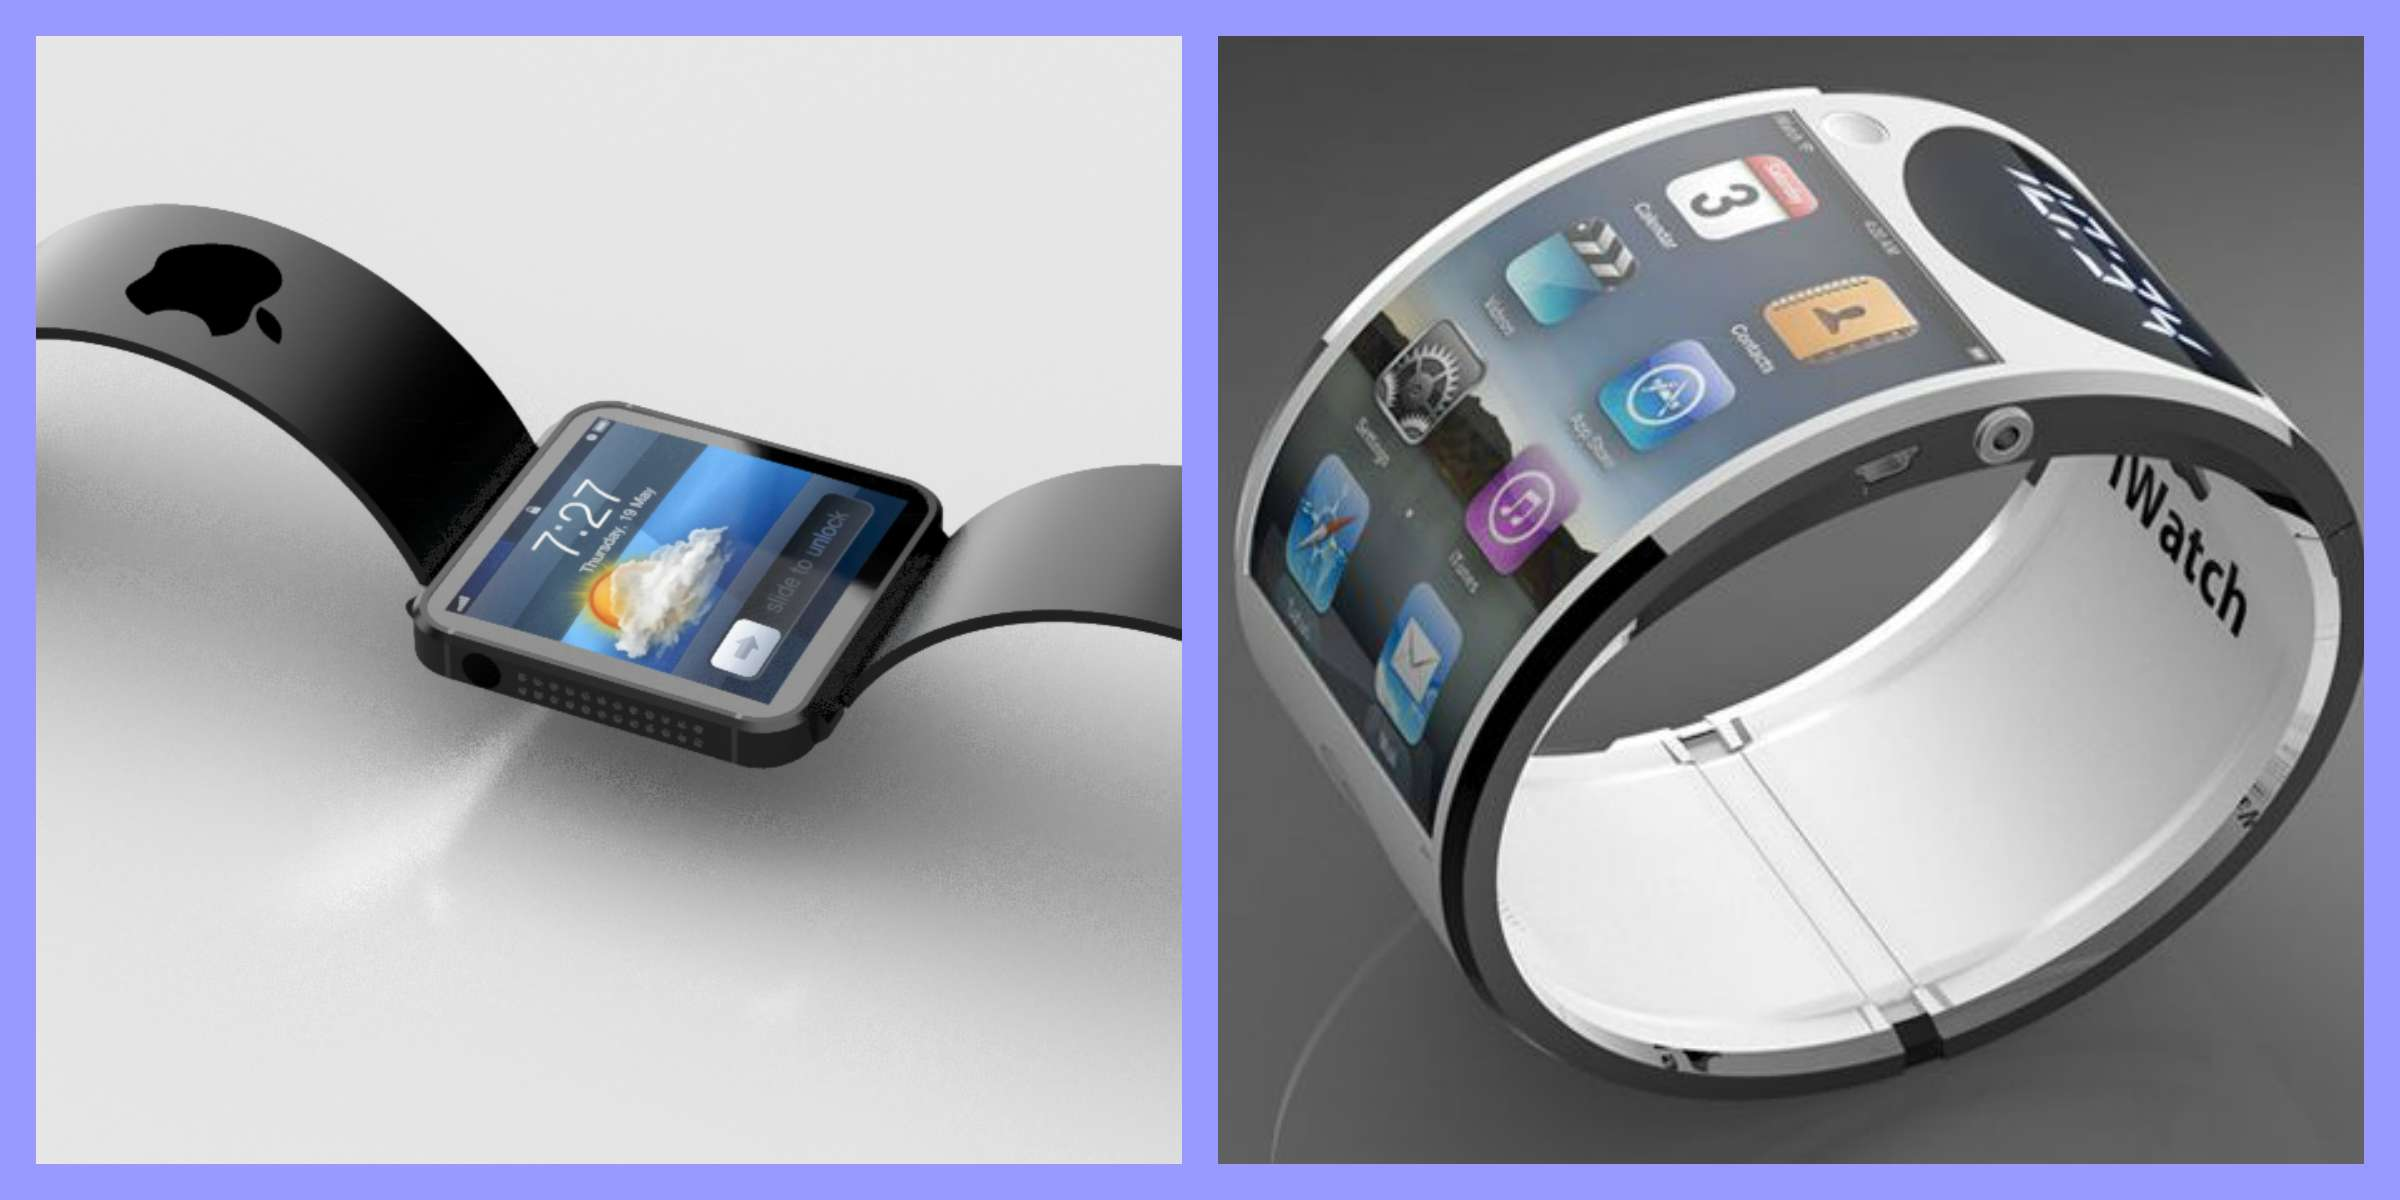 rumors mac i debuts belkin watch watches with integrated phone iphone chargers and belkinapplewatchchargerwithiphone apple dock first for charge